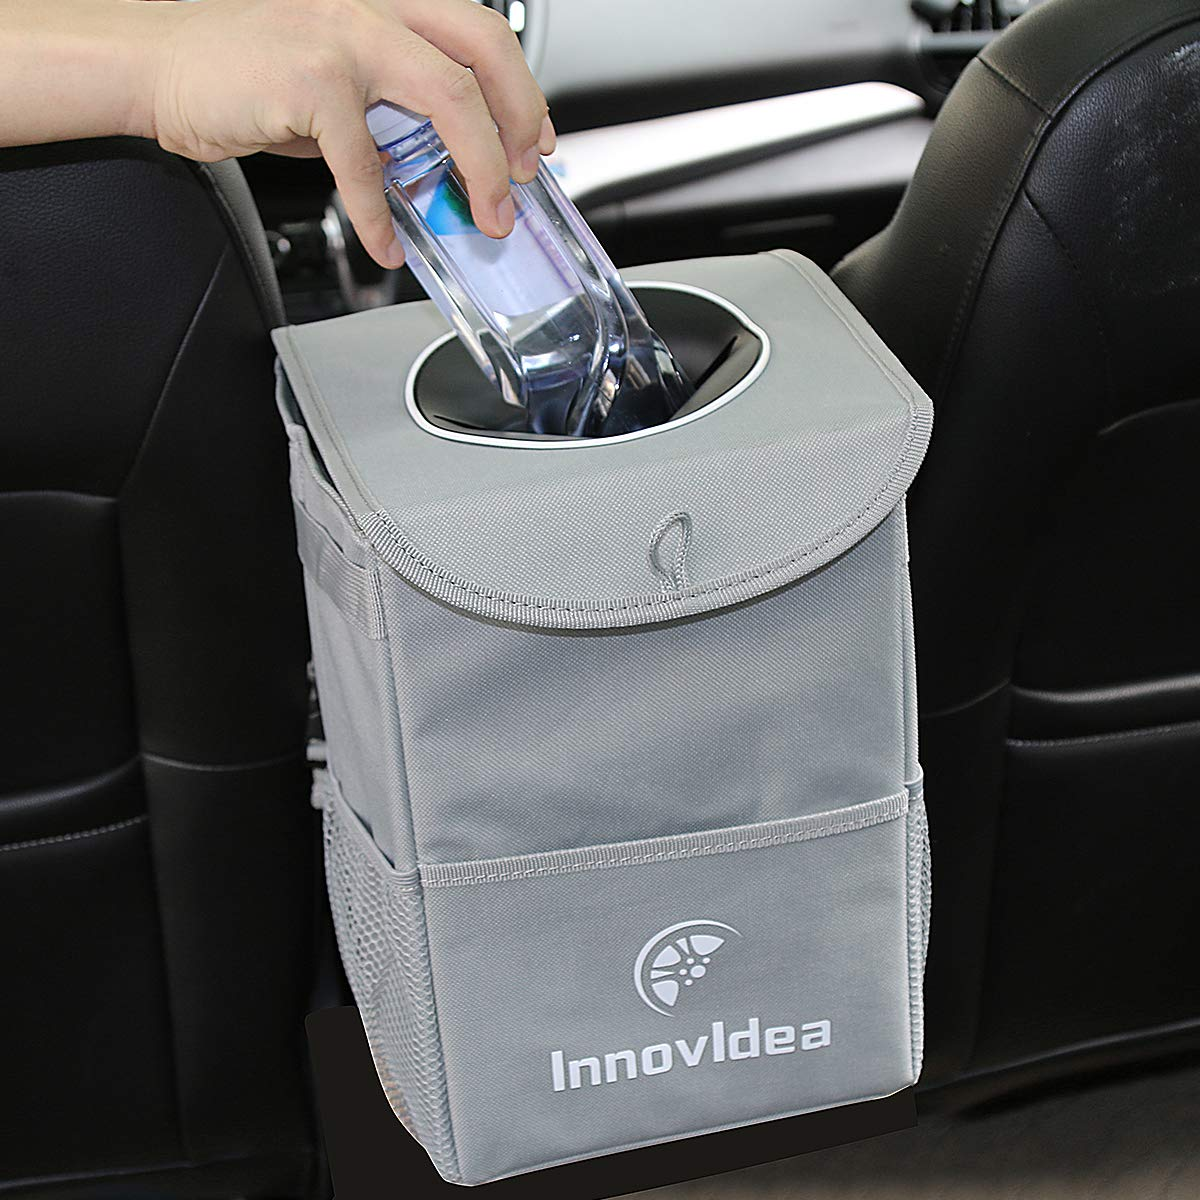 InnovIdea Car Bin, Auto Trash Hanging Bag for Car Storage Organiser, Collapsible Leak Proof Car Rubbish Bin with Lid and Adjustable Strap, Gray(11.5 x 8 x 7.5 inch) With A Roll of Bin Bags